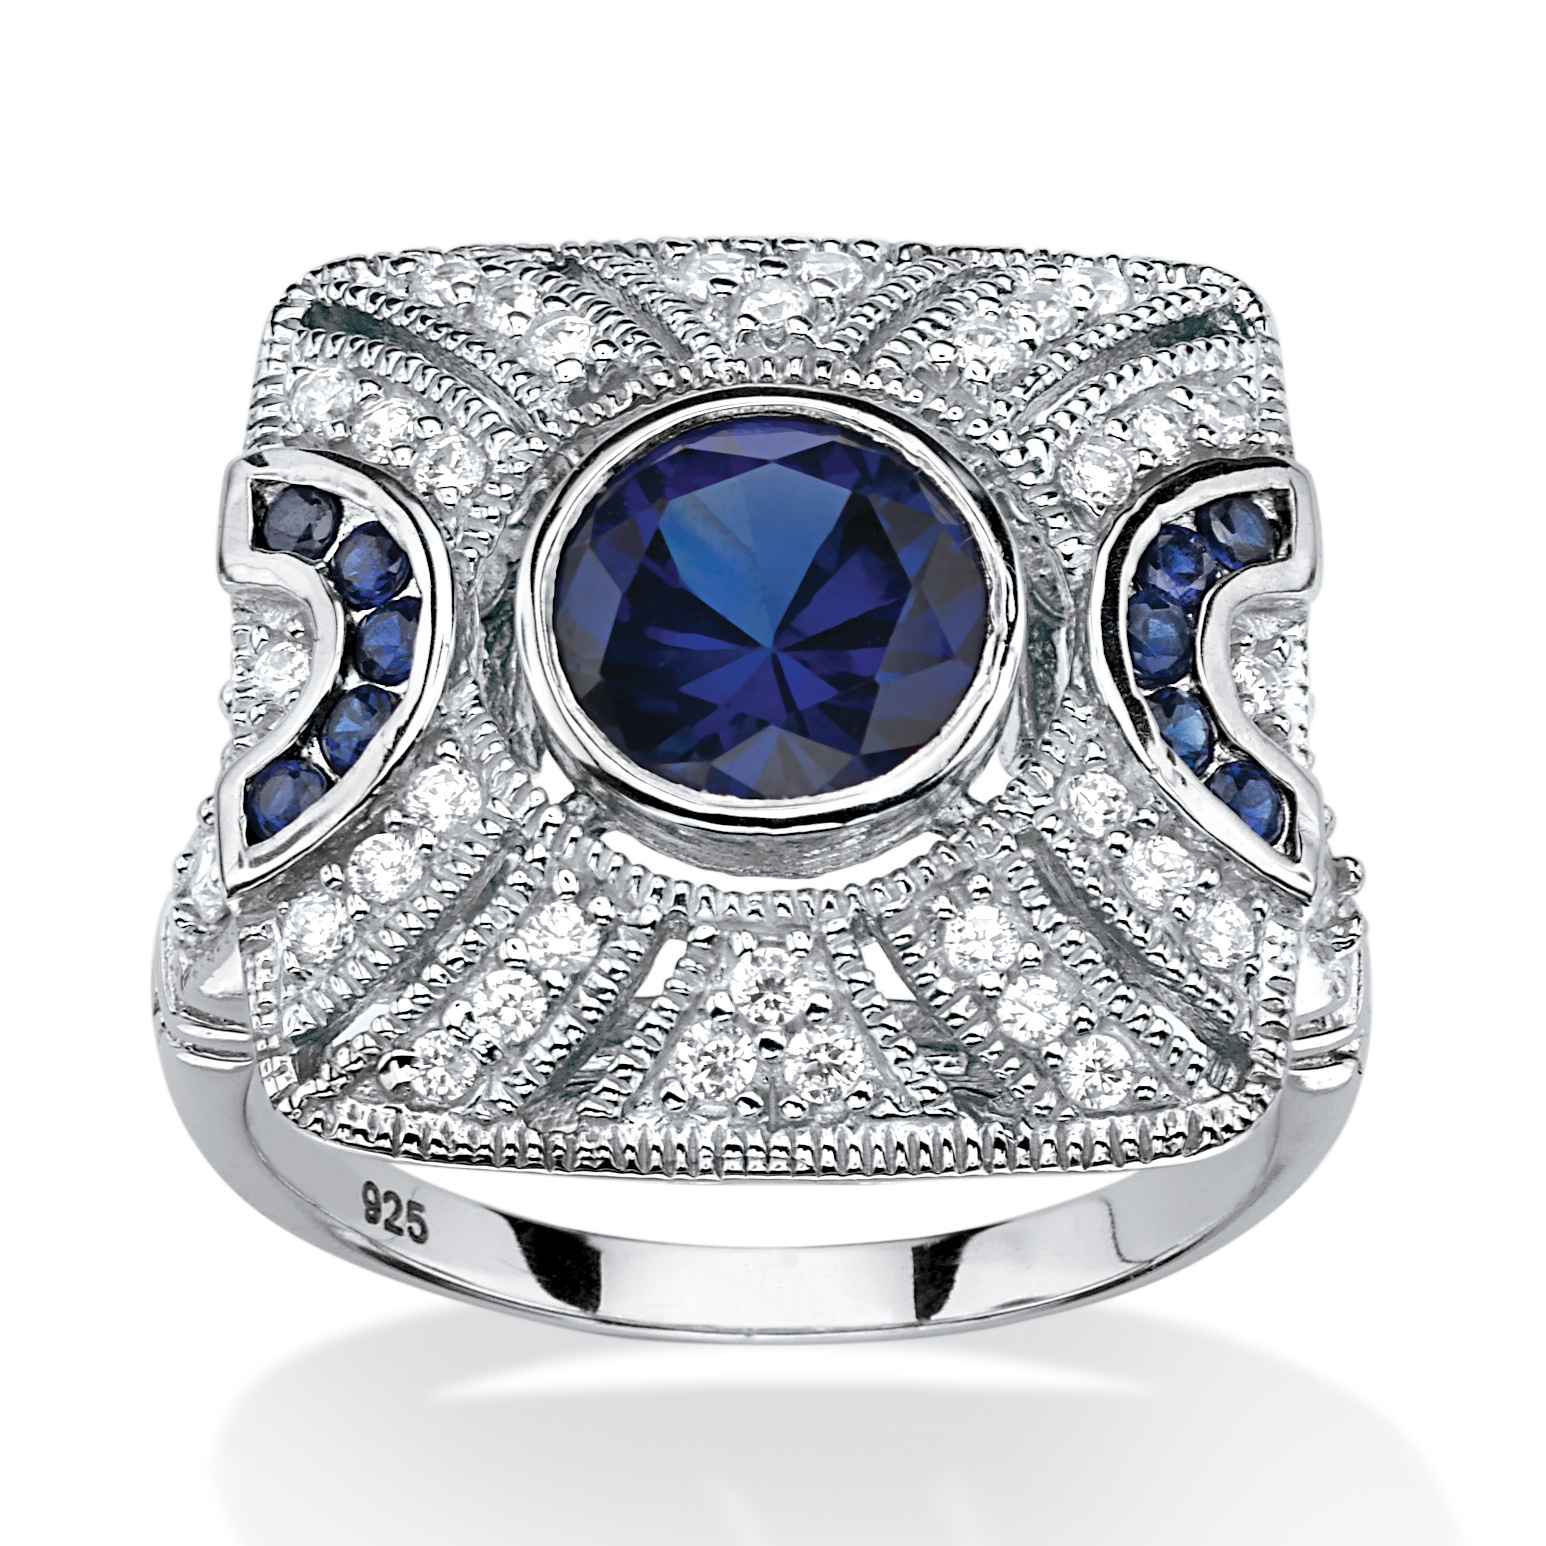 PalmBeach Jewelry 3.19 TCW Lab Created Blue Sapphire and Cubic Zirconia Cocktail Ring in Platinum Over Sterling Silver